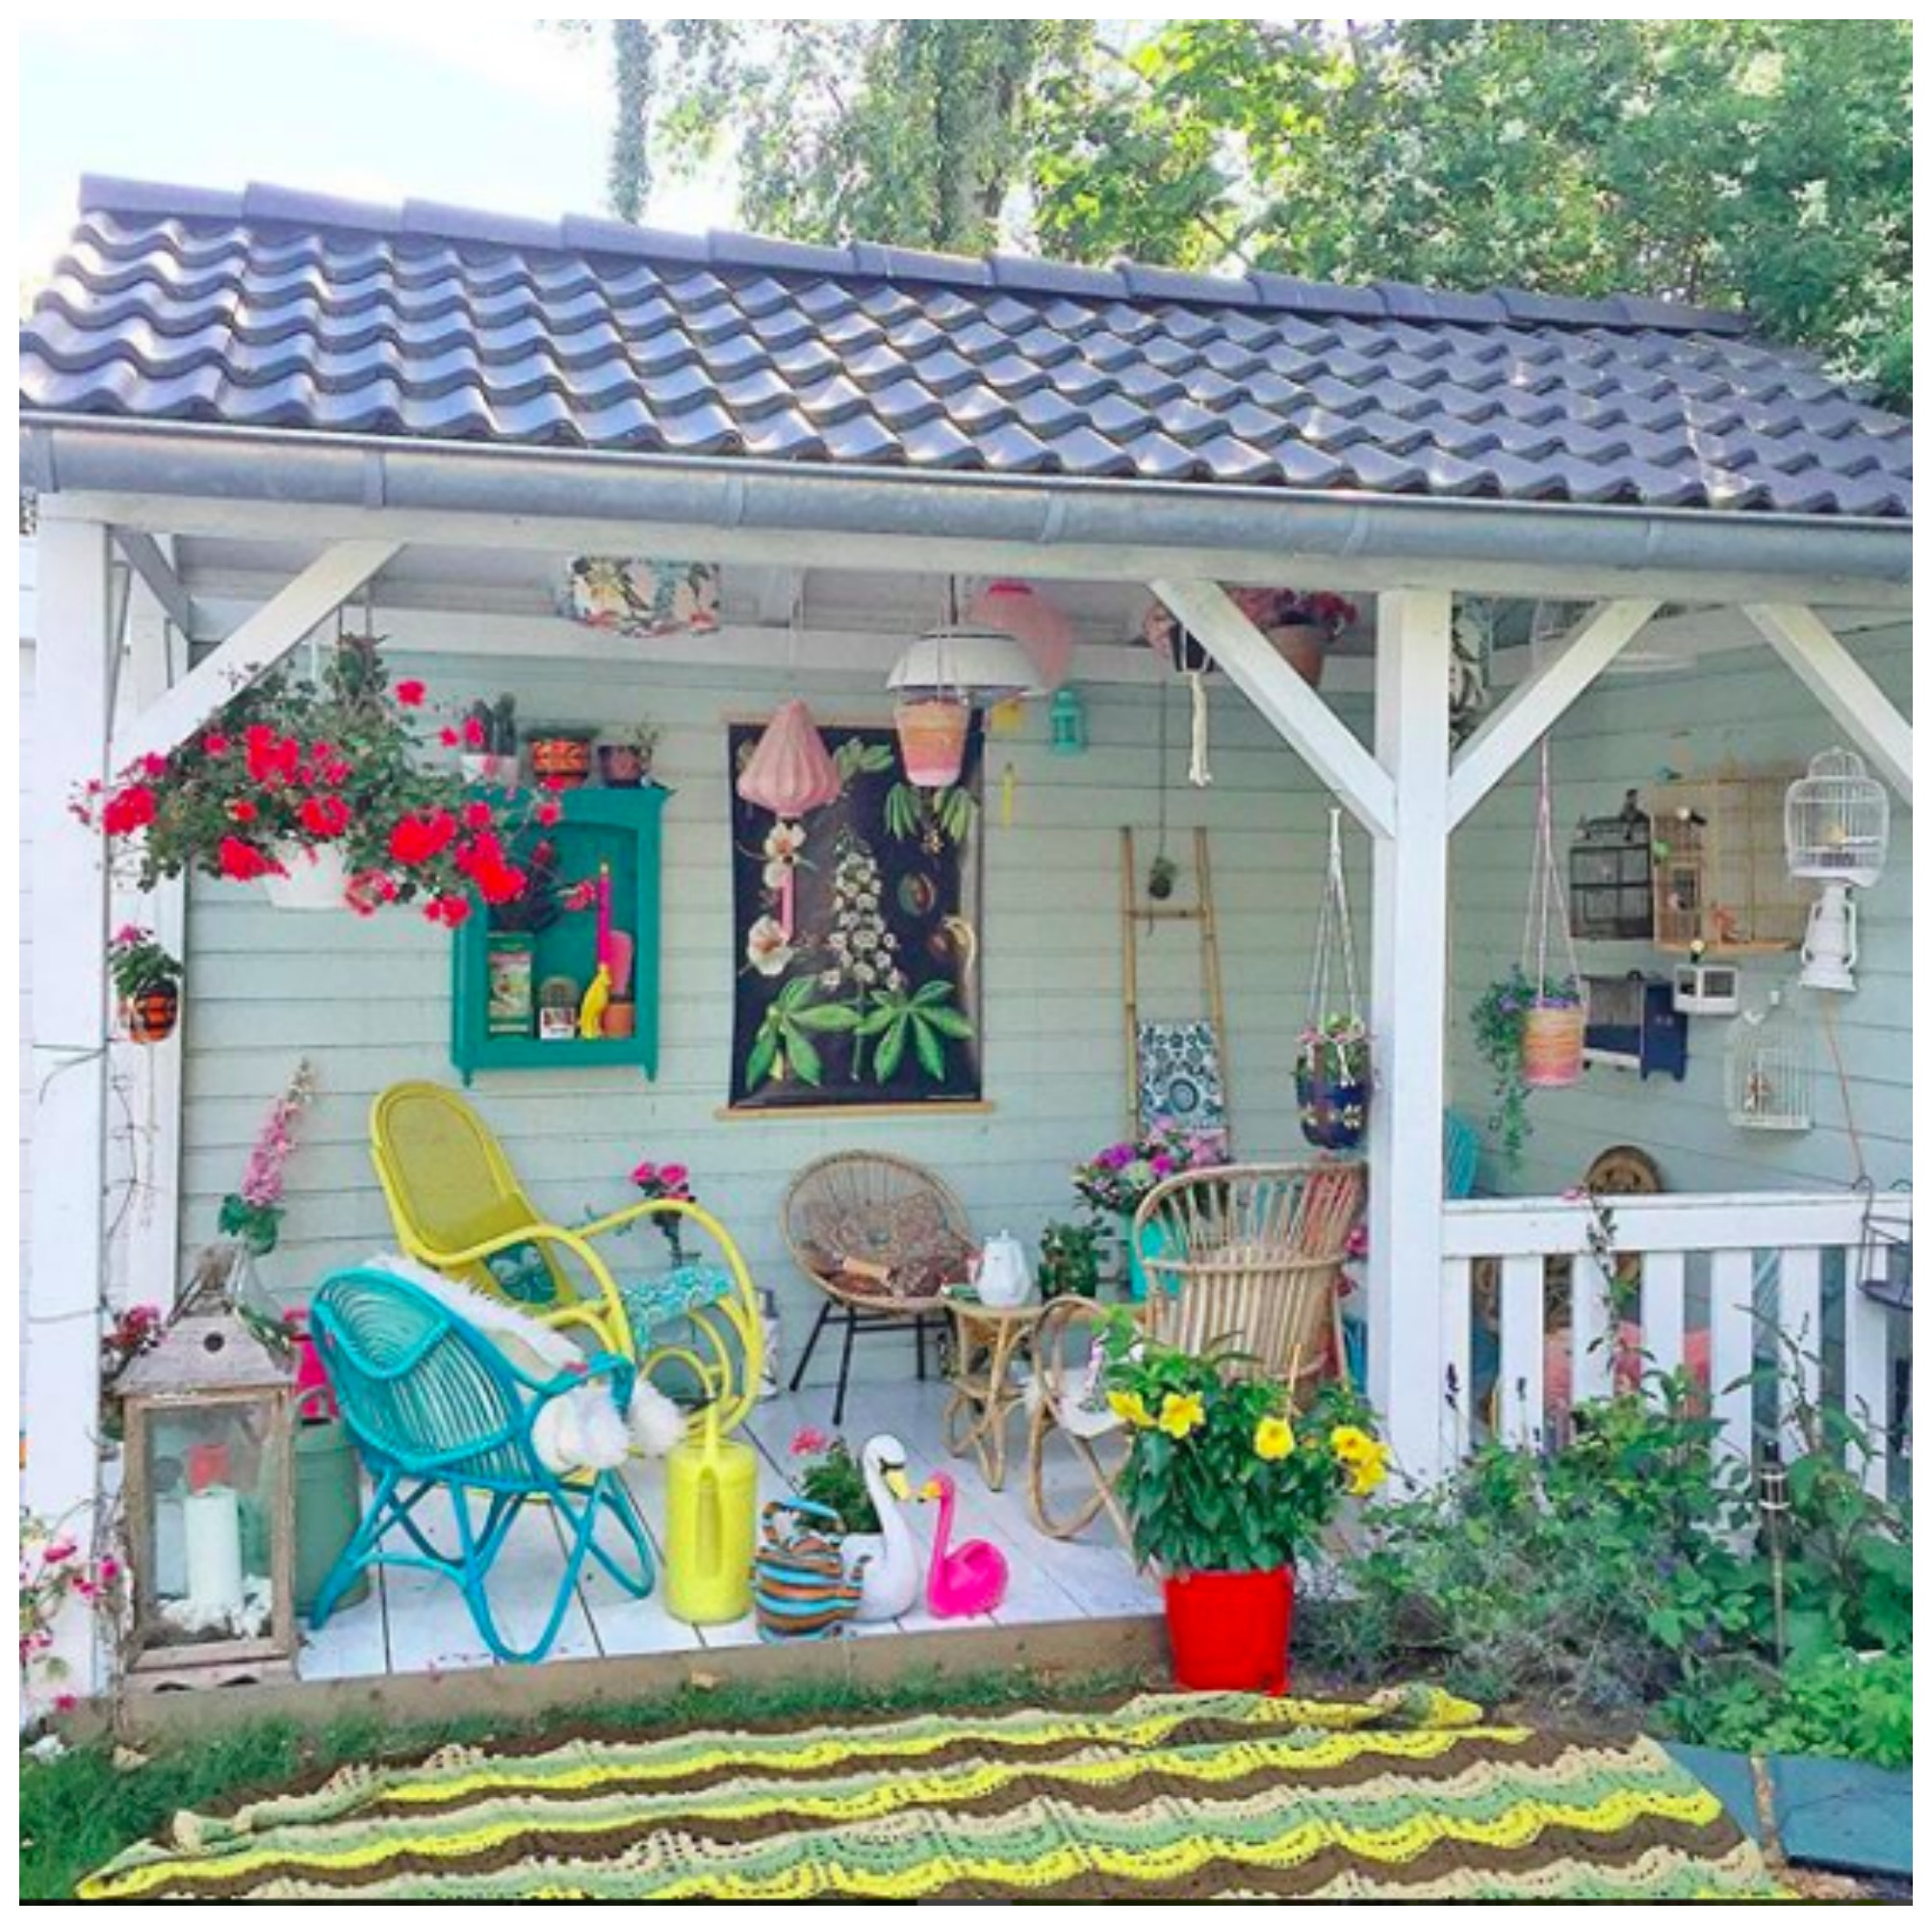 Home Tour: Corine's Colorful Vintage Inspired Floral Cottage in the Netherlands